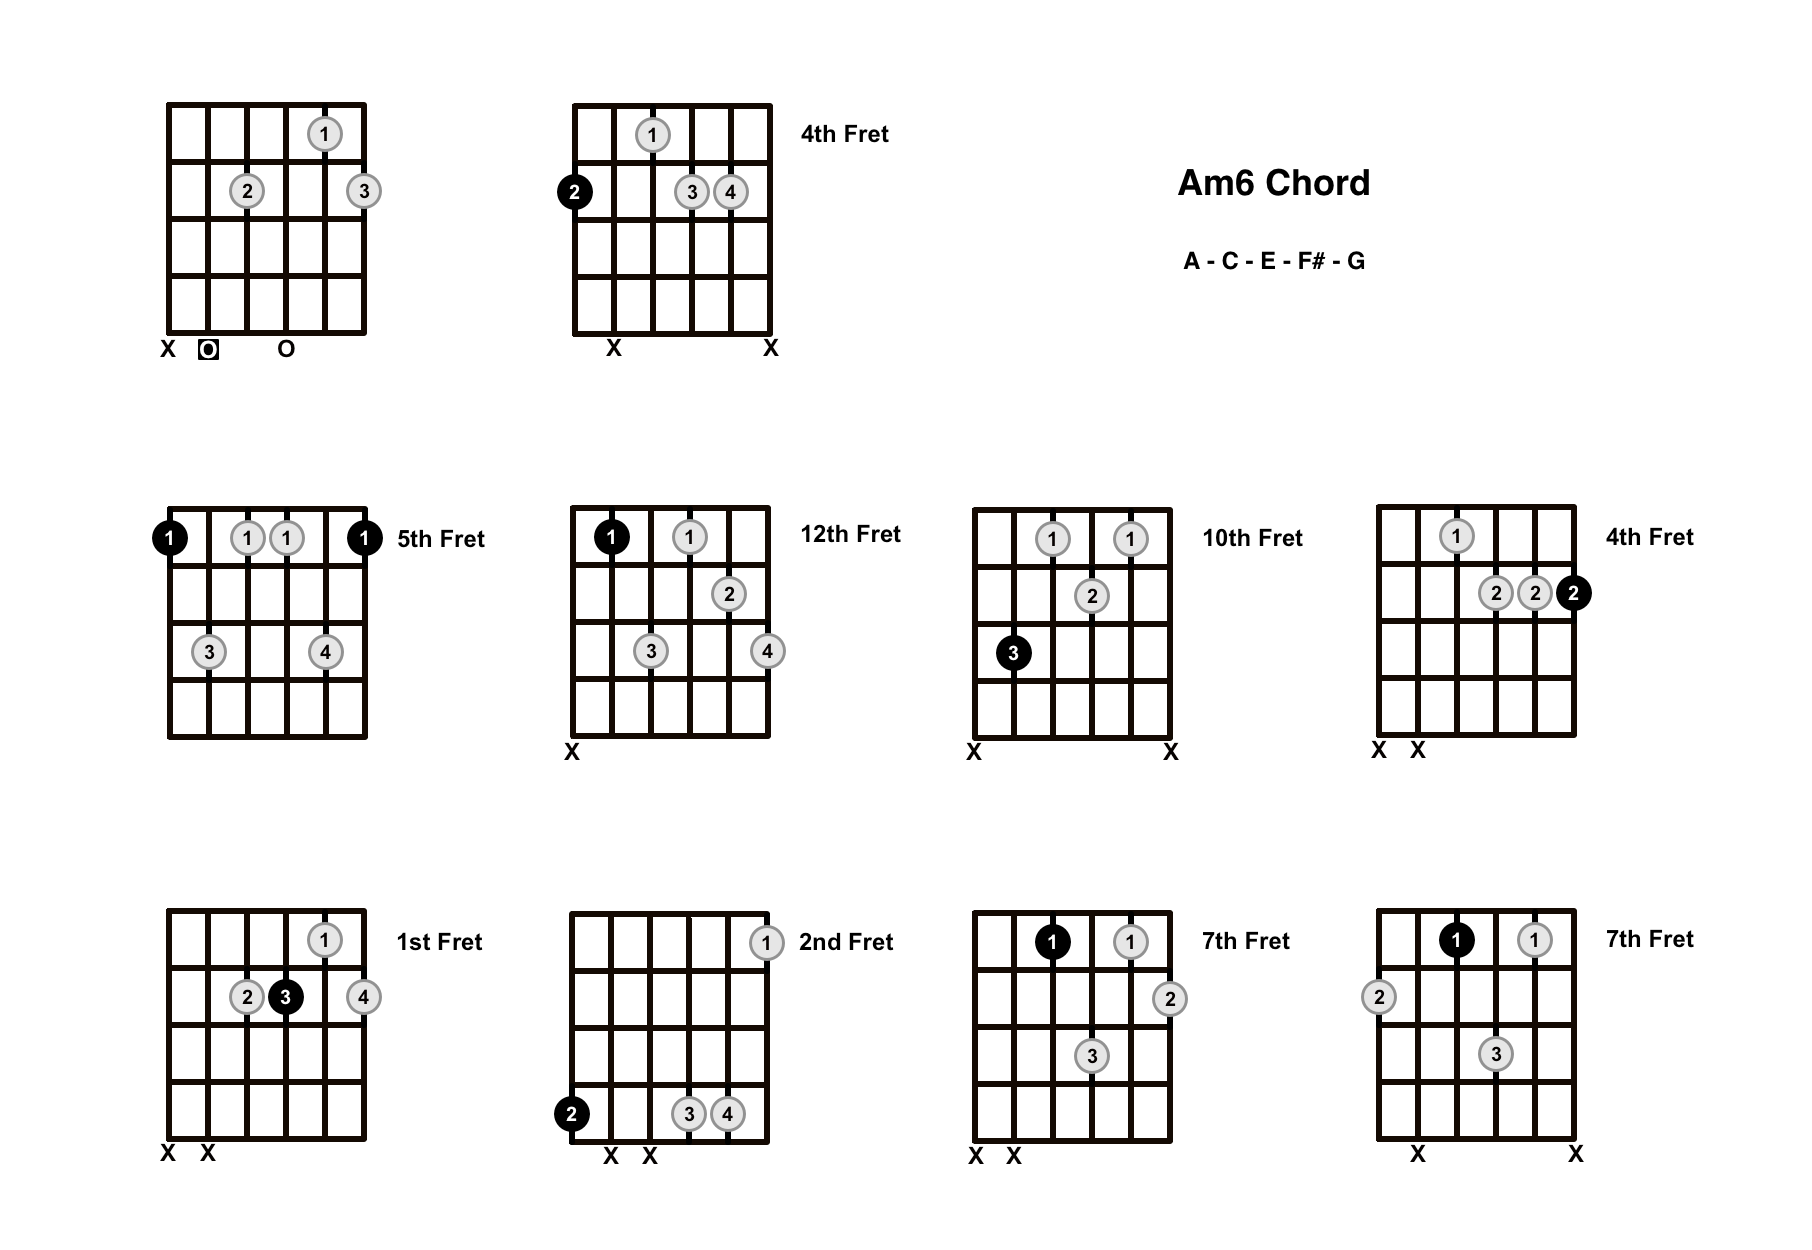 Am6 Chord On The Guitar (A minor 6) – Diagrams, Finger Positions and Theory